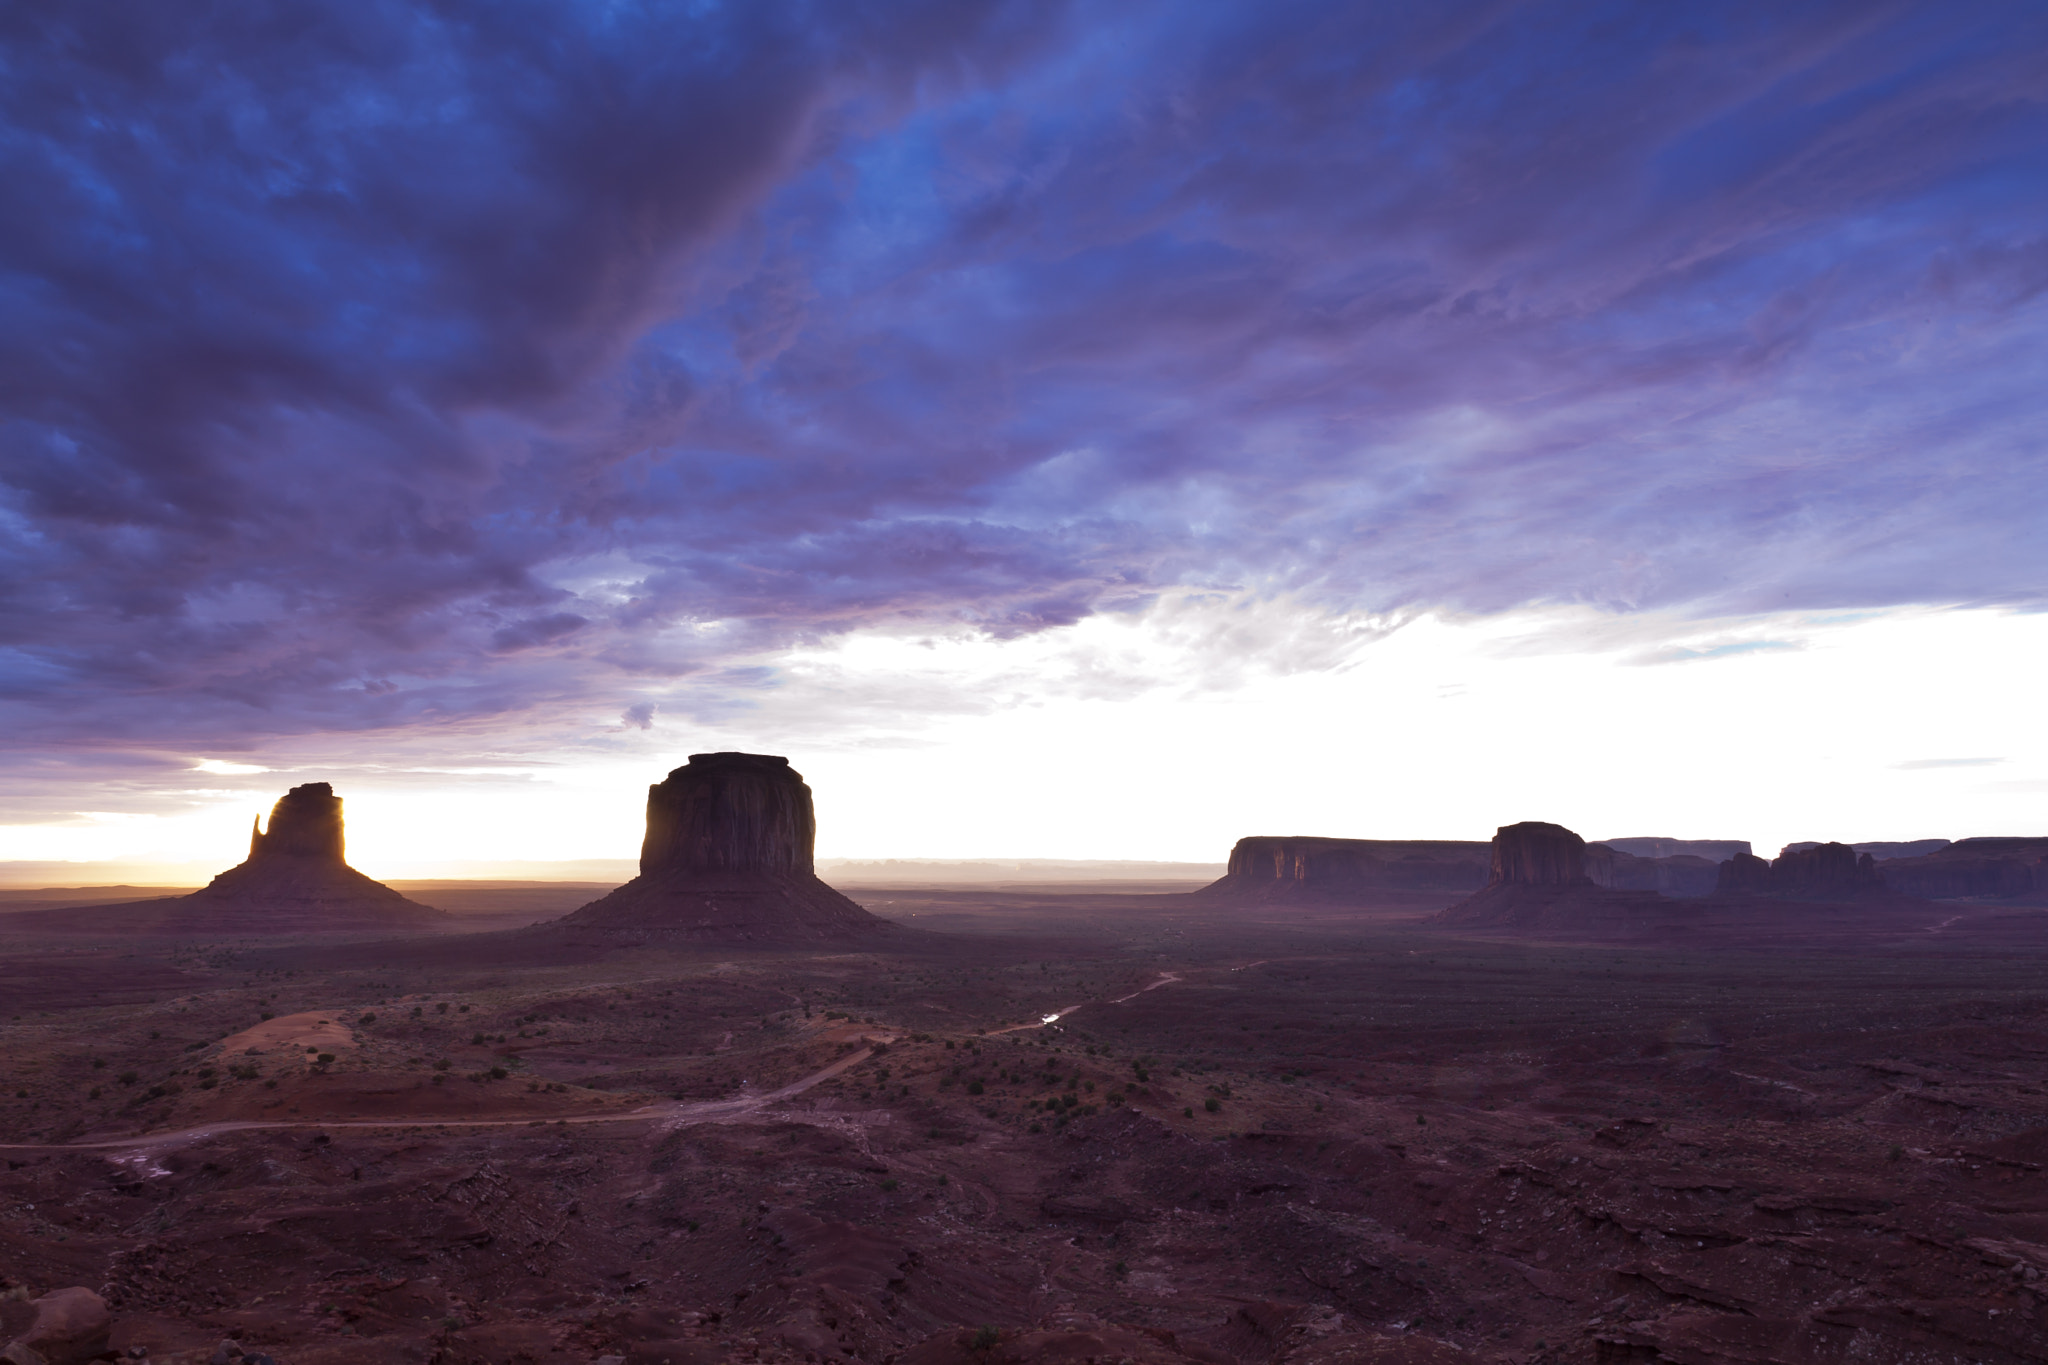 Photograph Another day in the Monument Valley by Marco Mechi on 500px